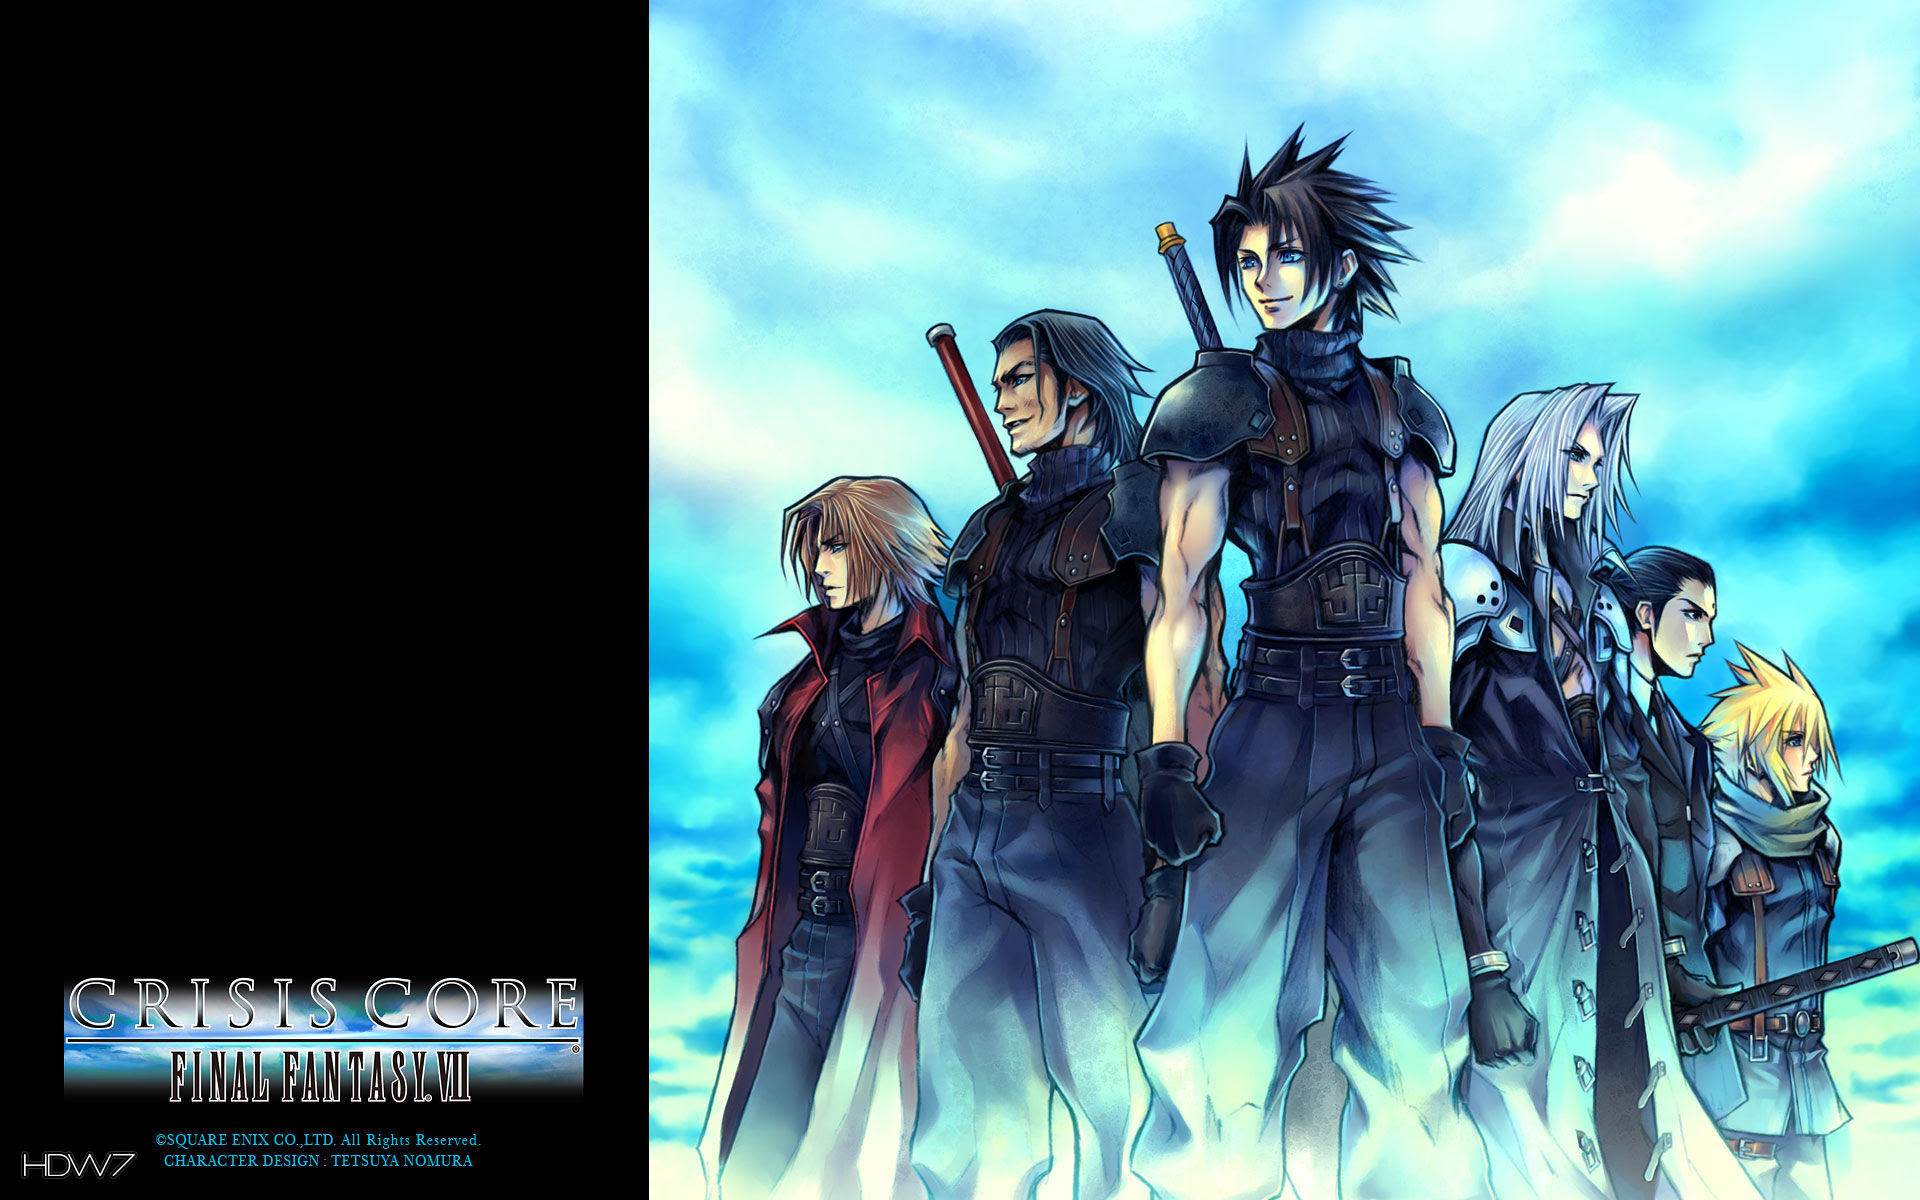 Crisis Core Final Fantasy Vii Jp Art Widescreen Wallpaper Hd